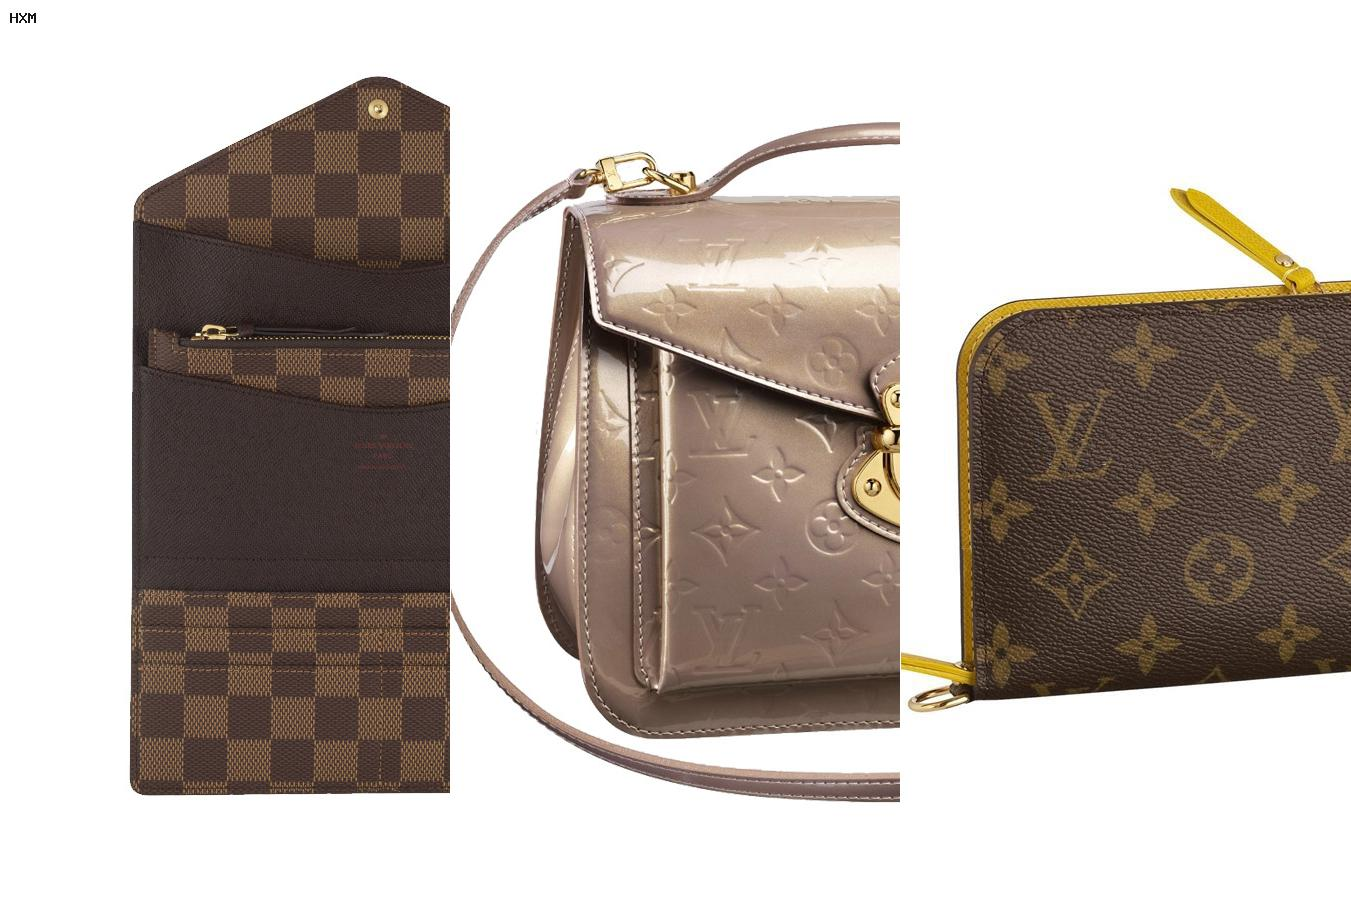 louis vuitton designer